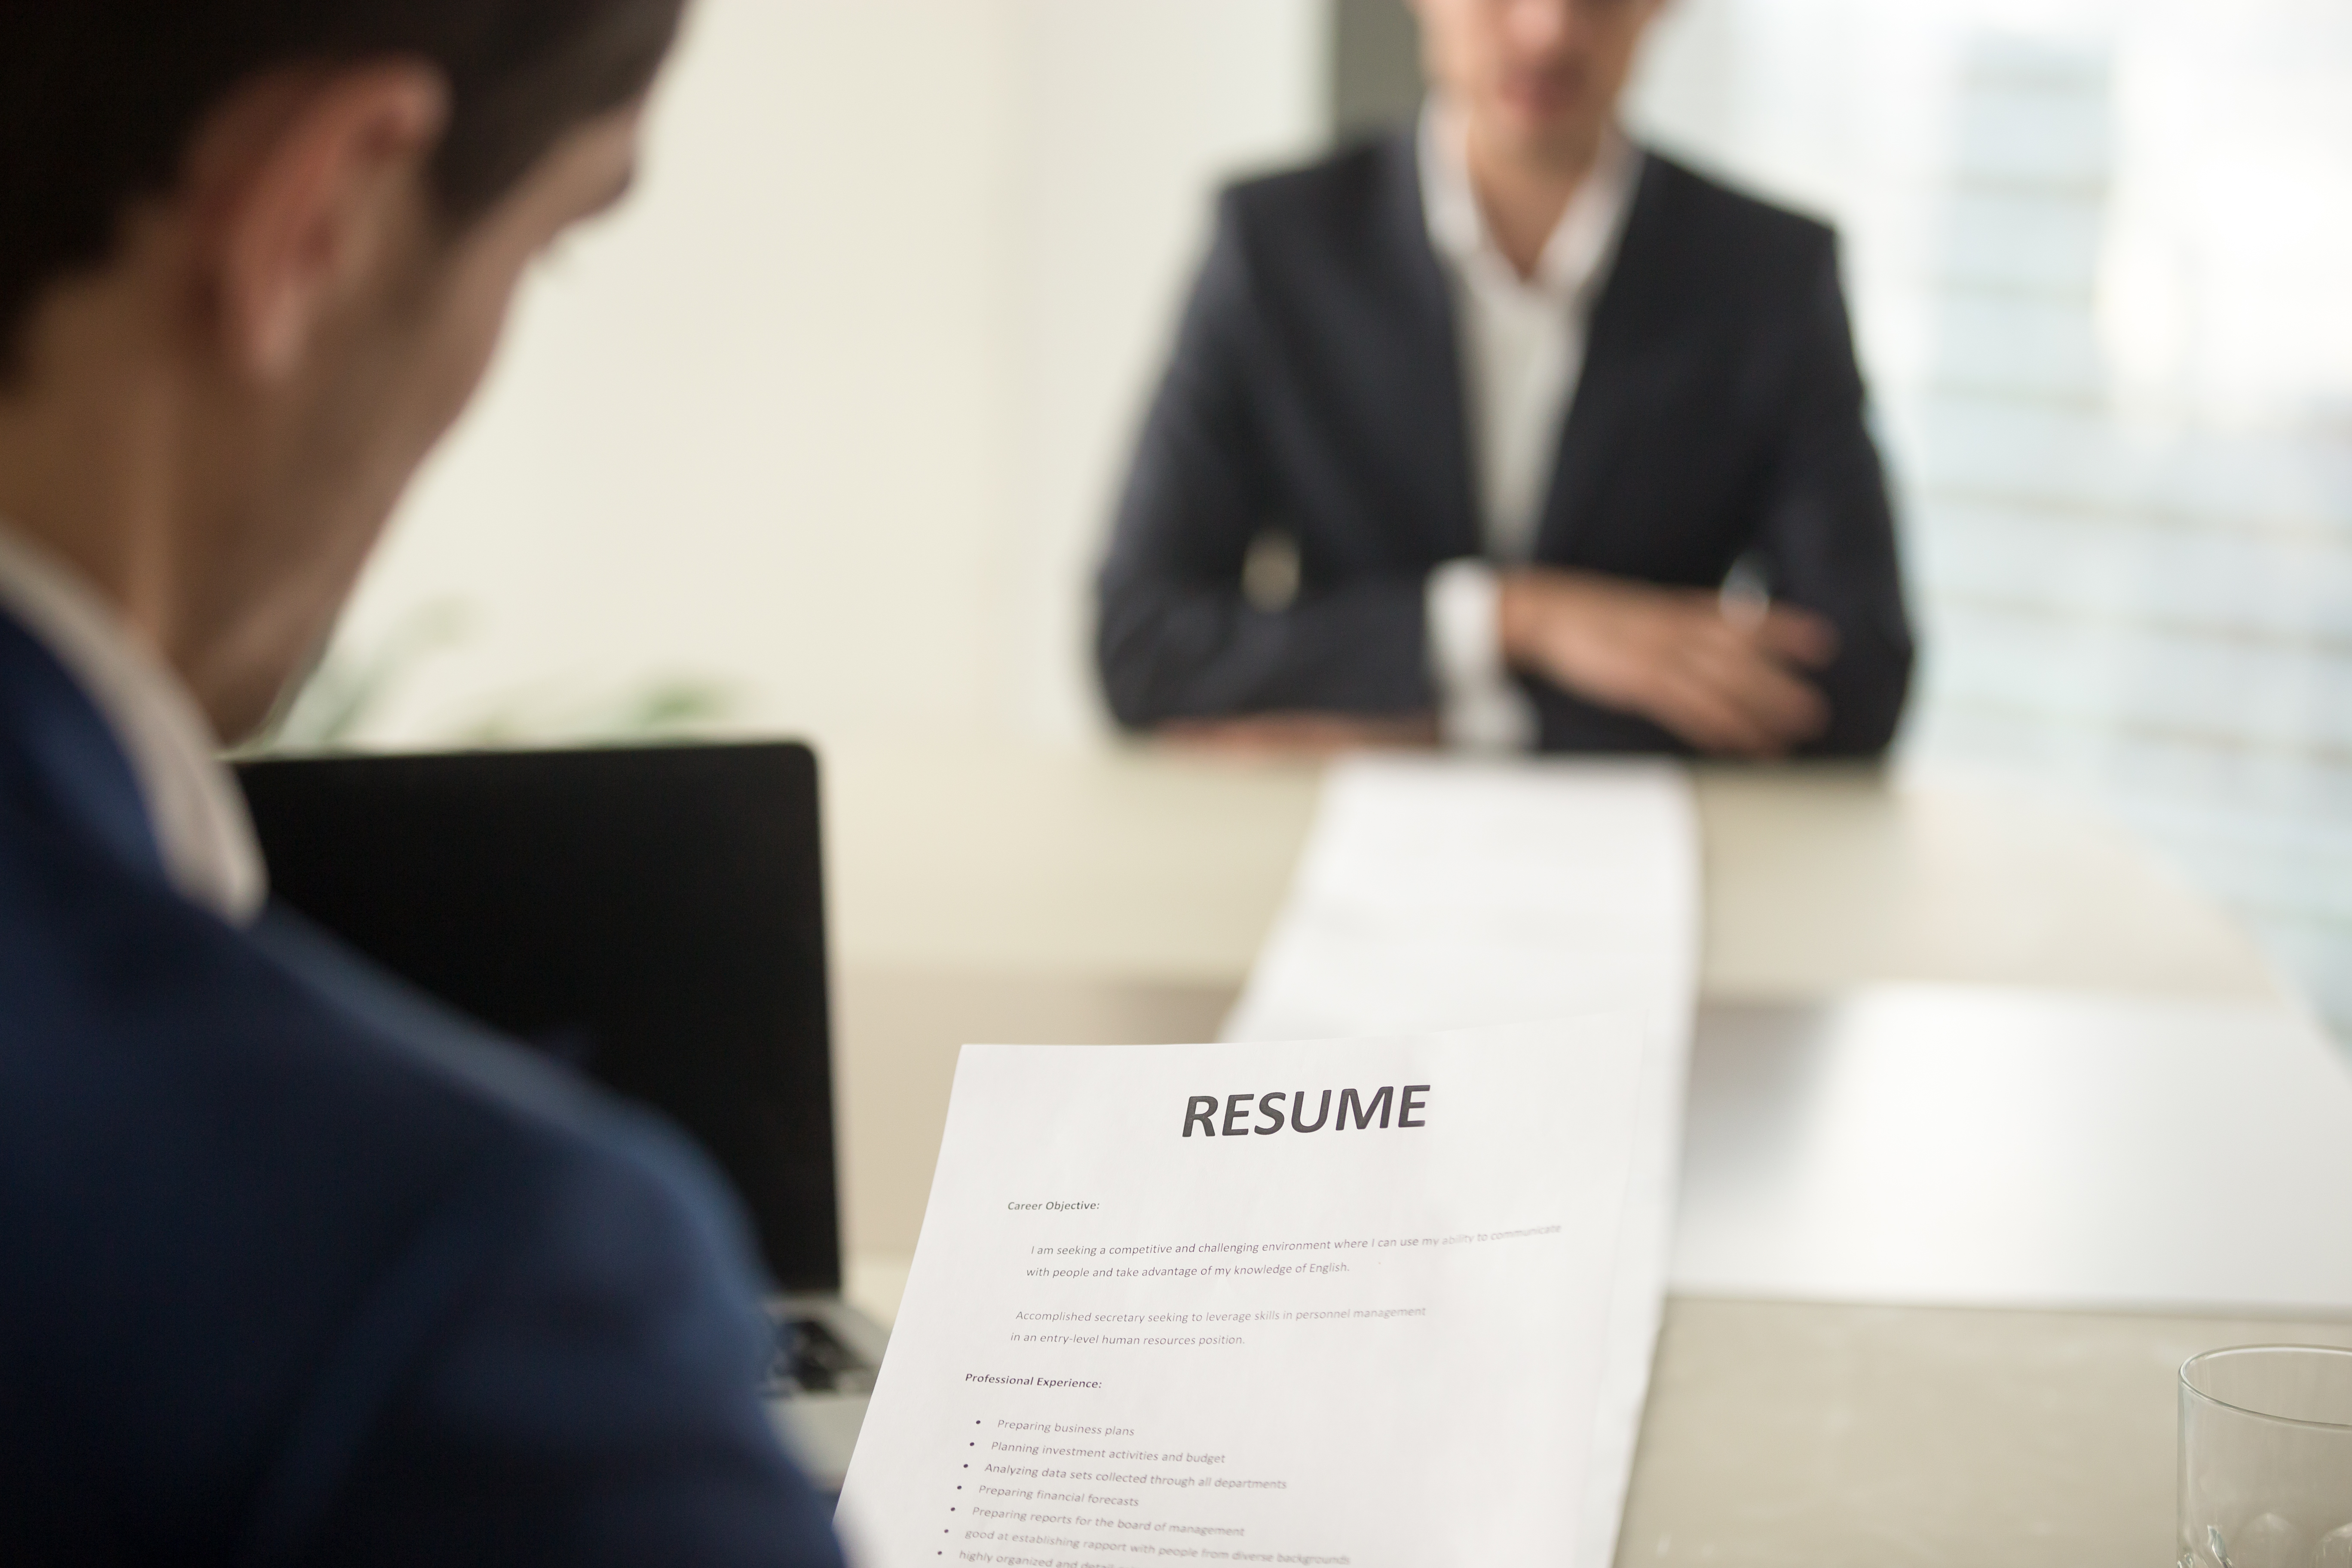 Is your resume current